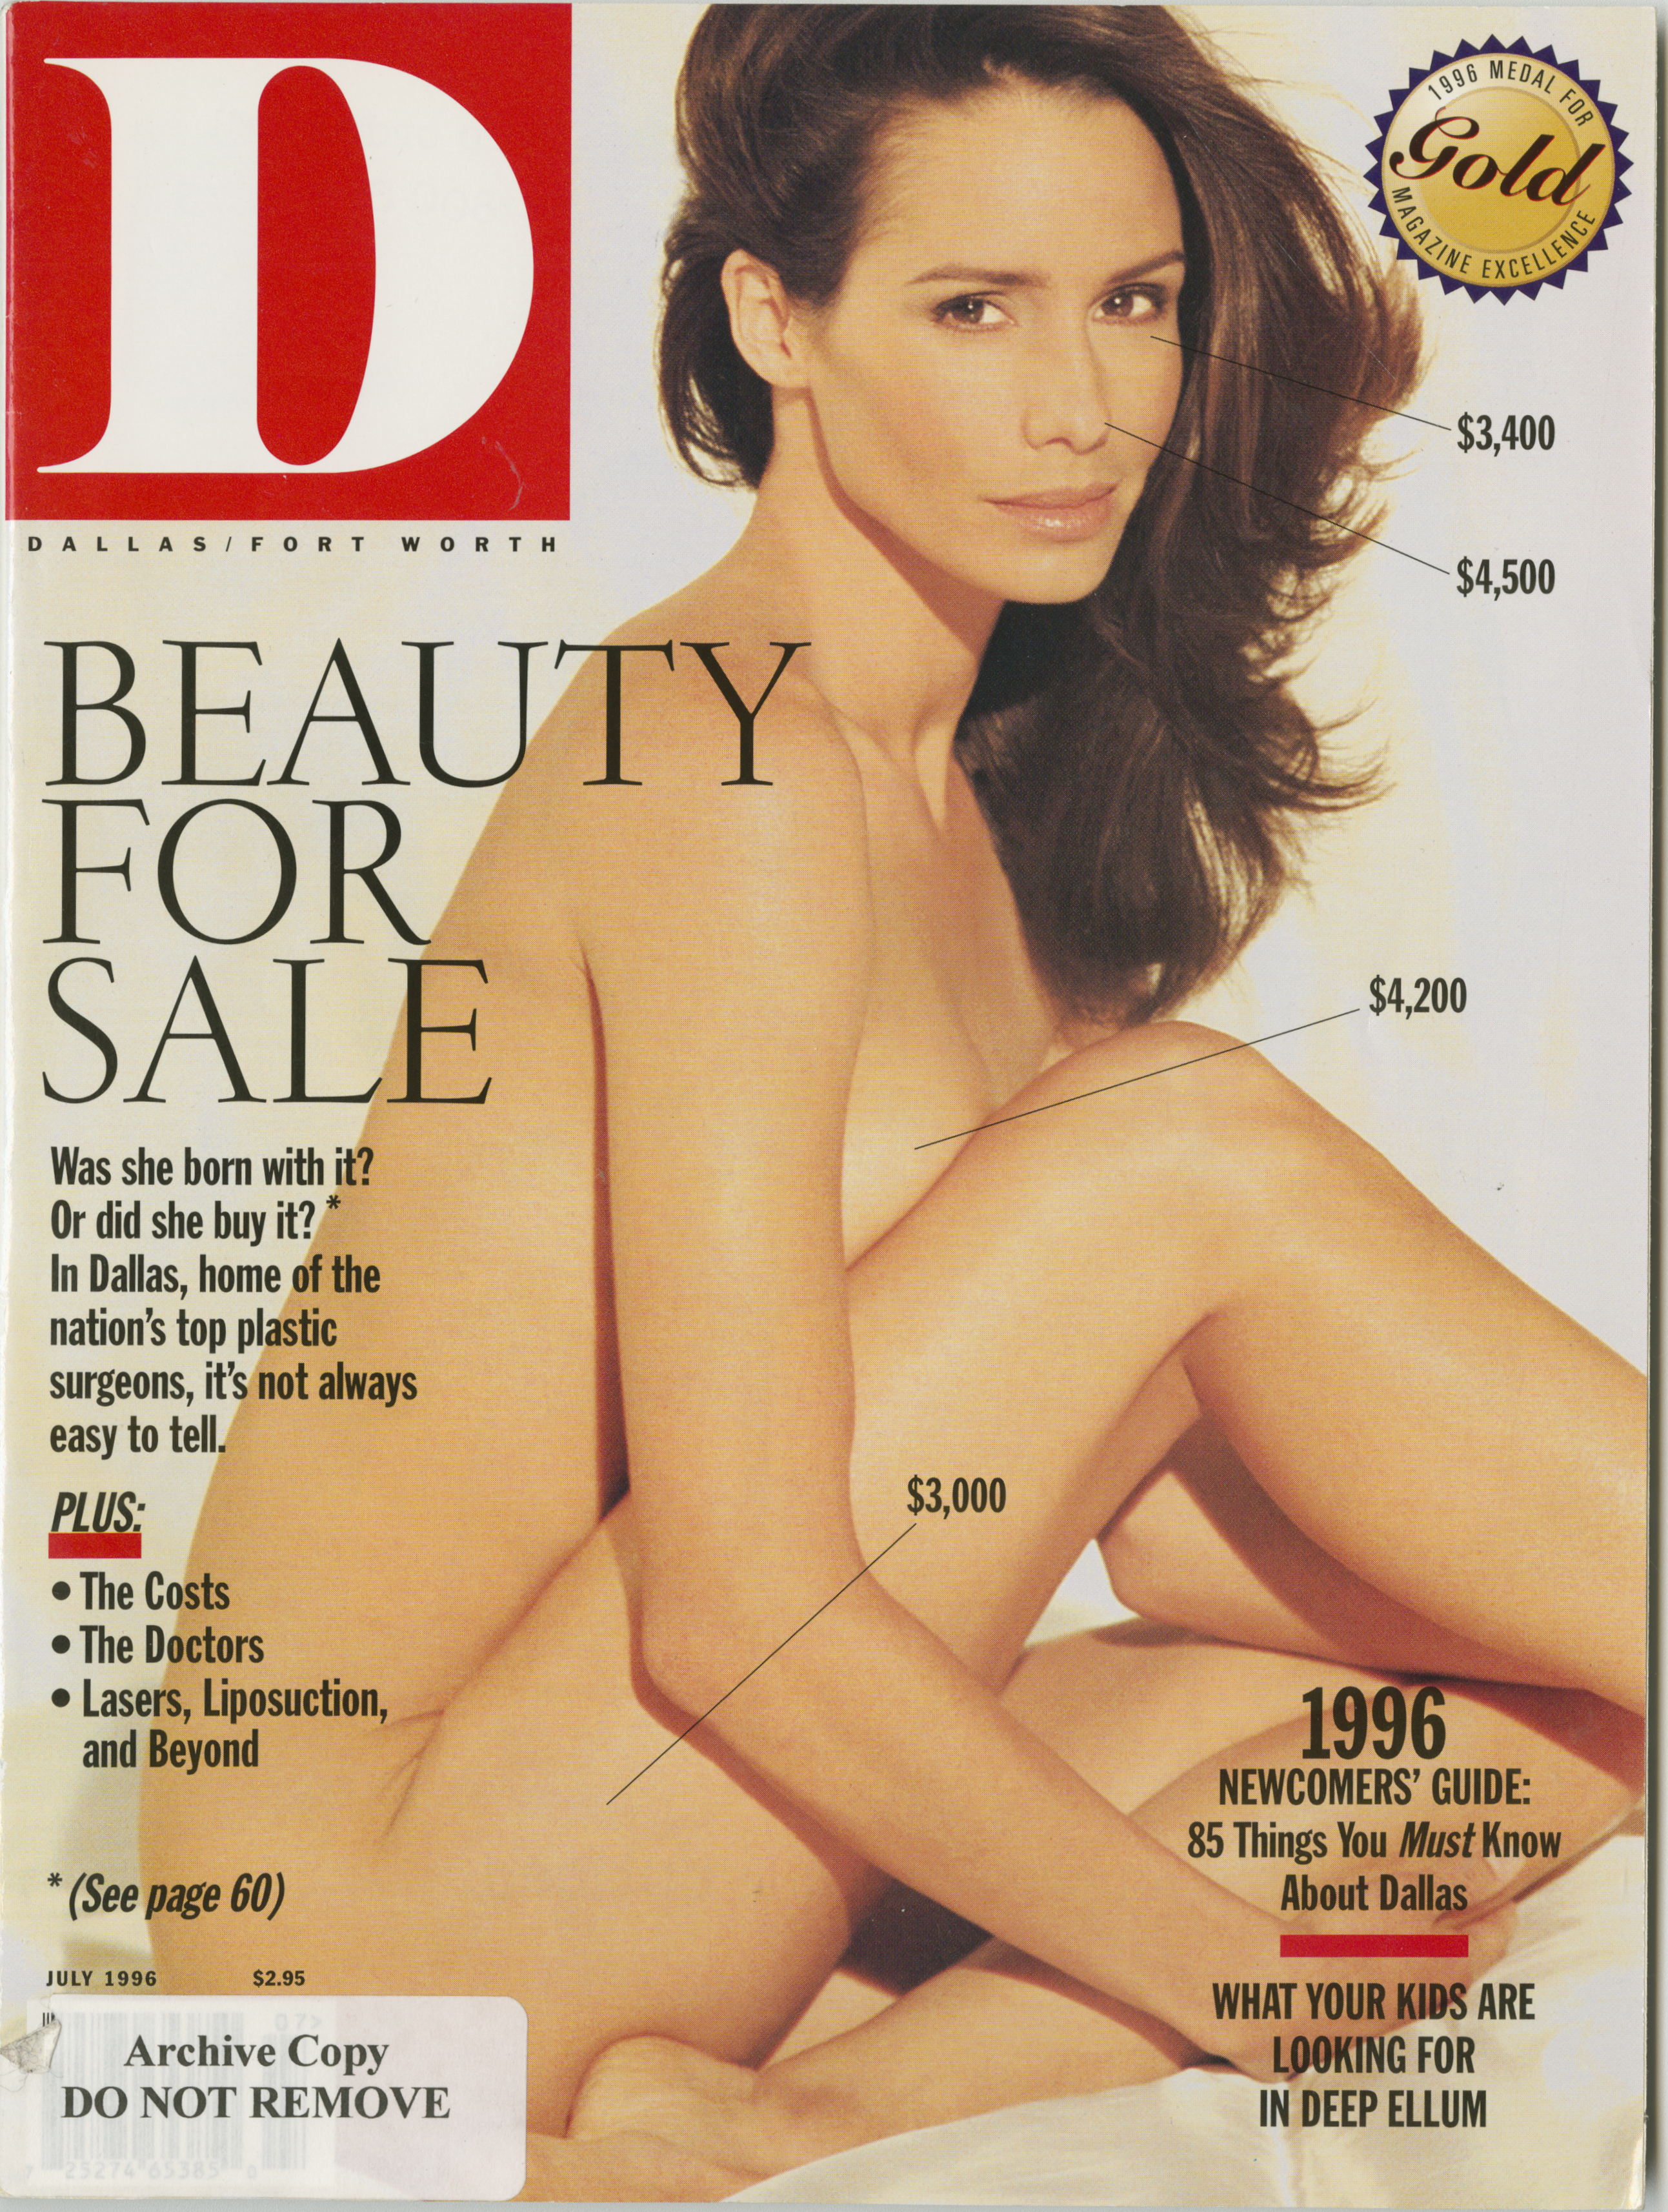 July 1996 cover